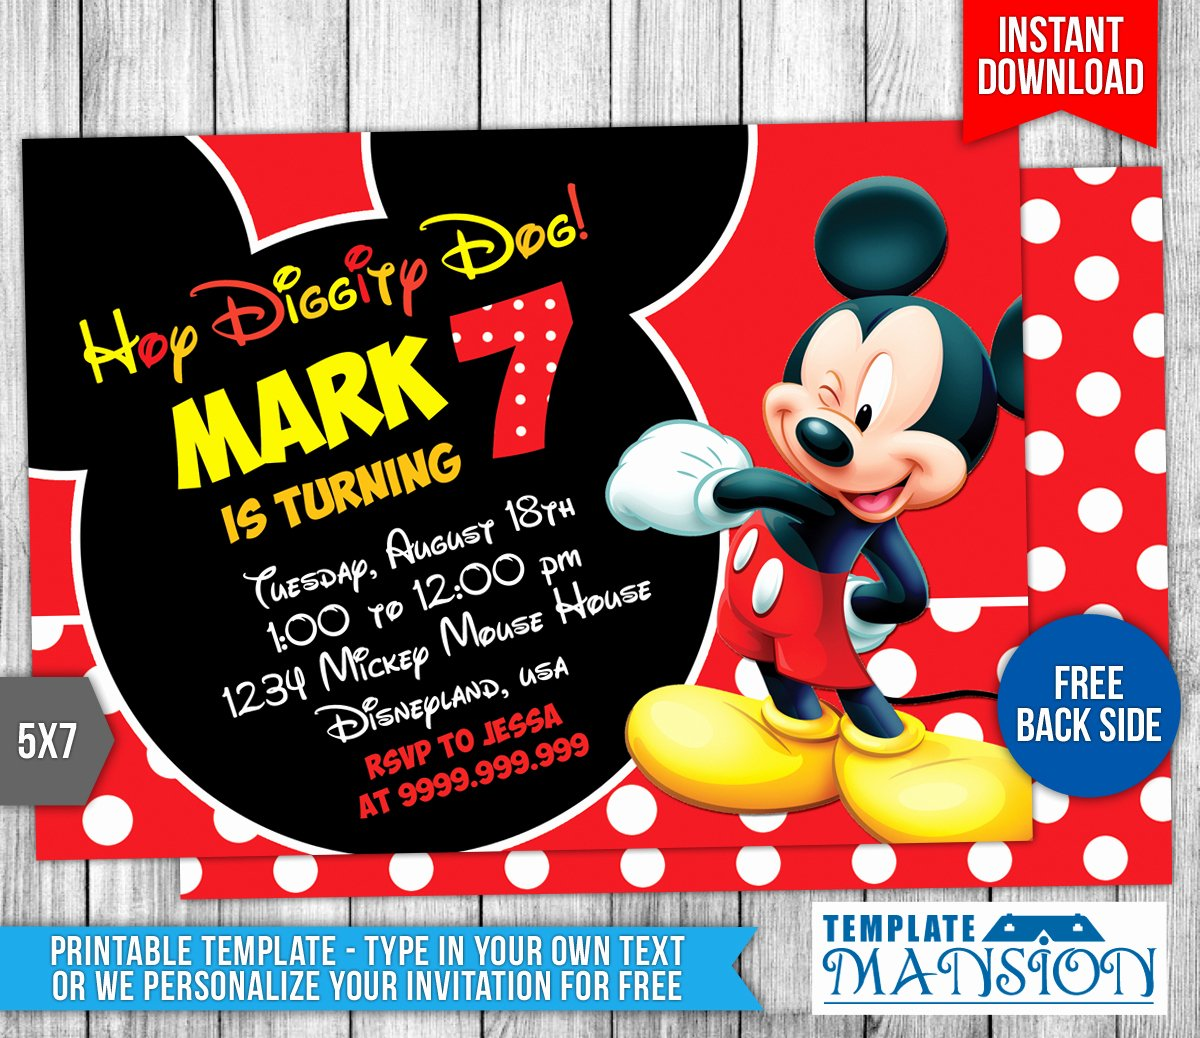 Mickey Mouse Birthday Invitation Template Best Of Mickey Mouse Birthday Invitation 4 by Templatemansion On